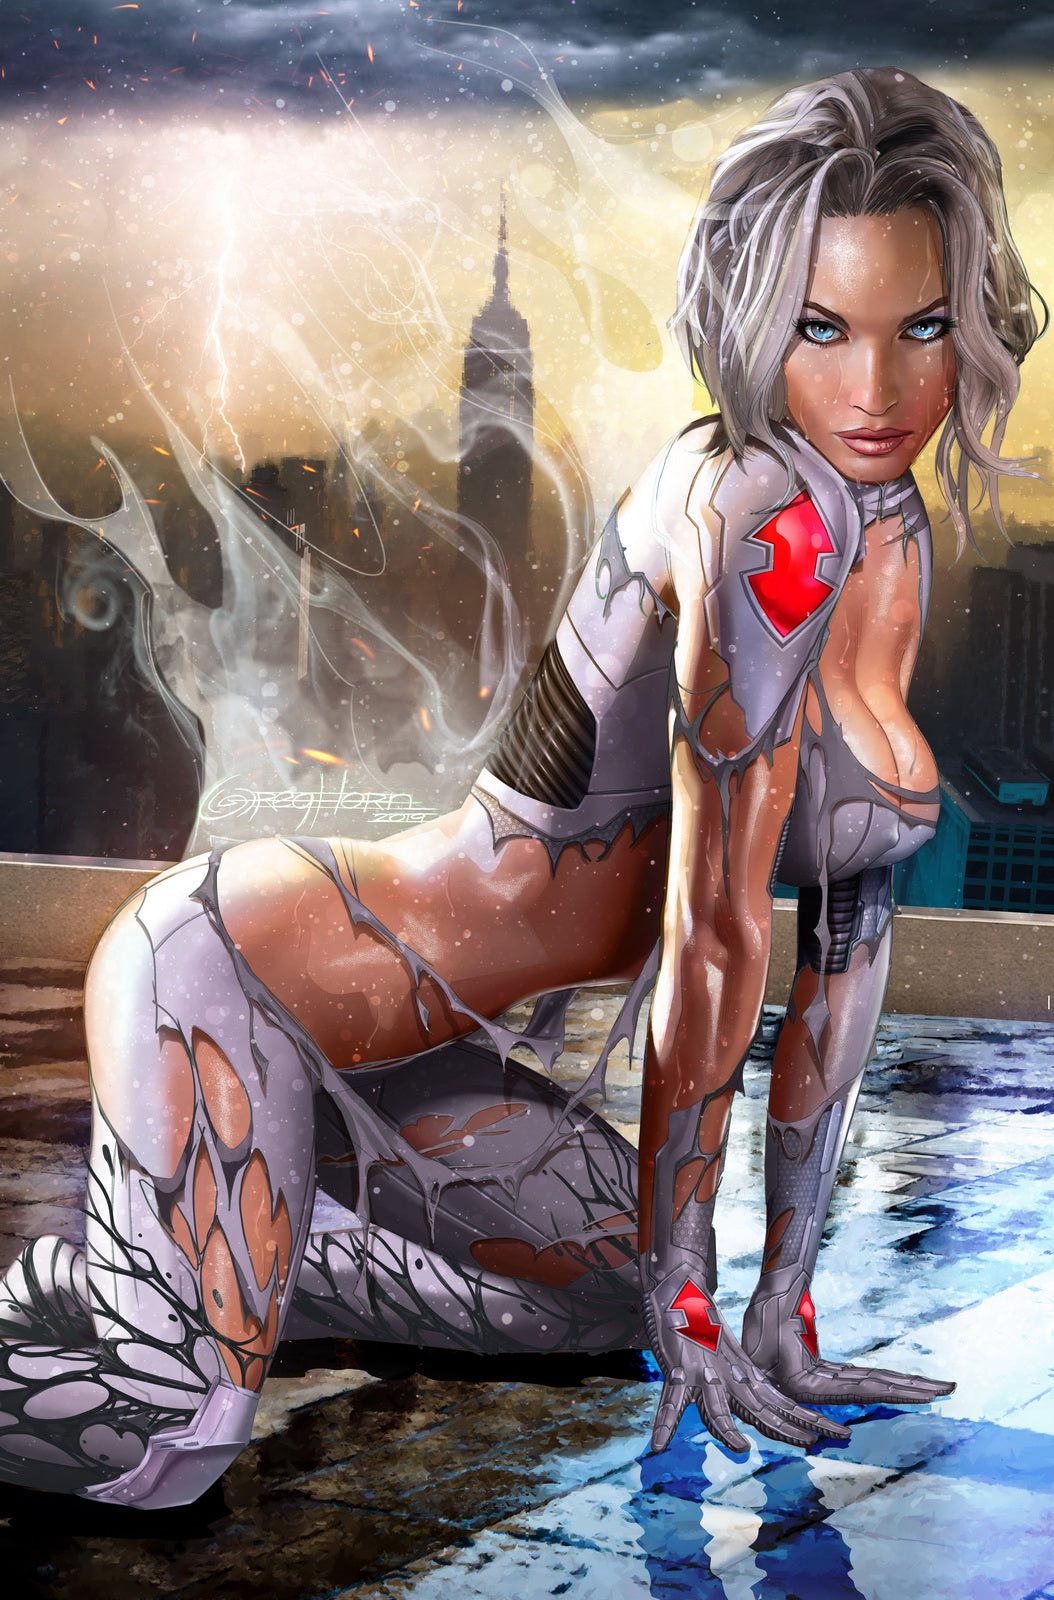 White Widow - On the Prowl - High Quality 11 x 17 Digital Print